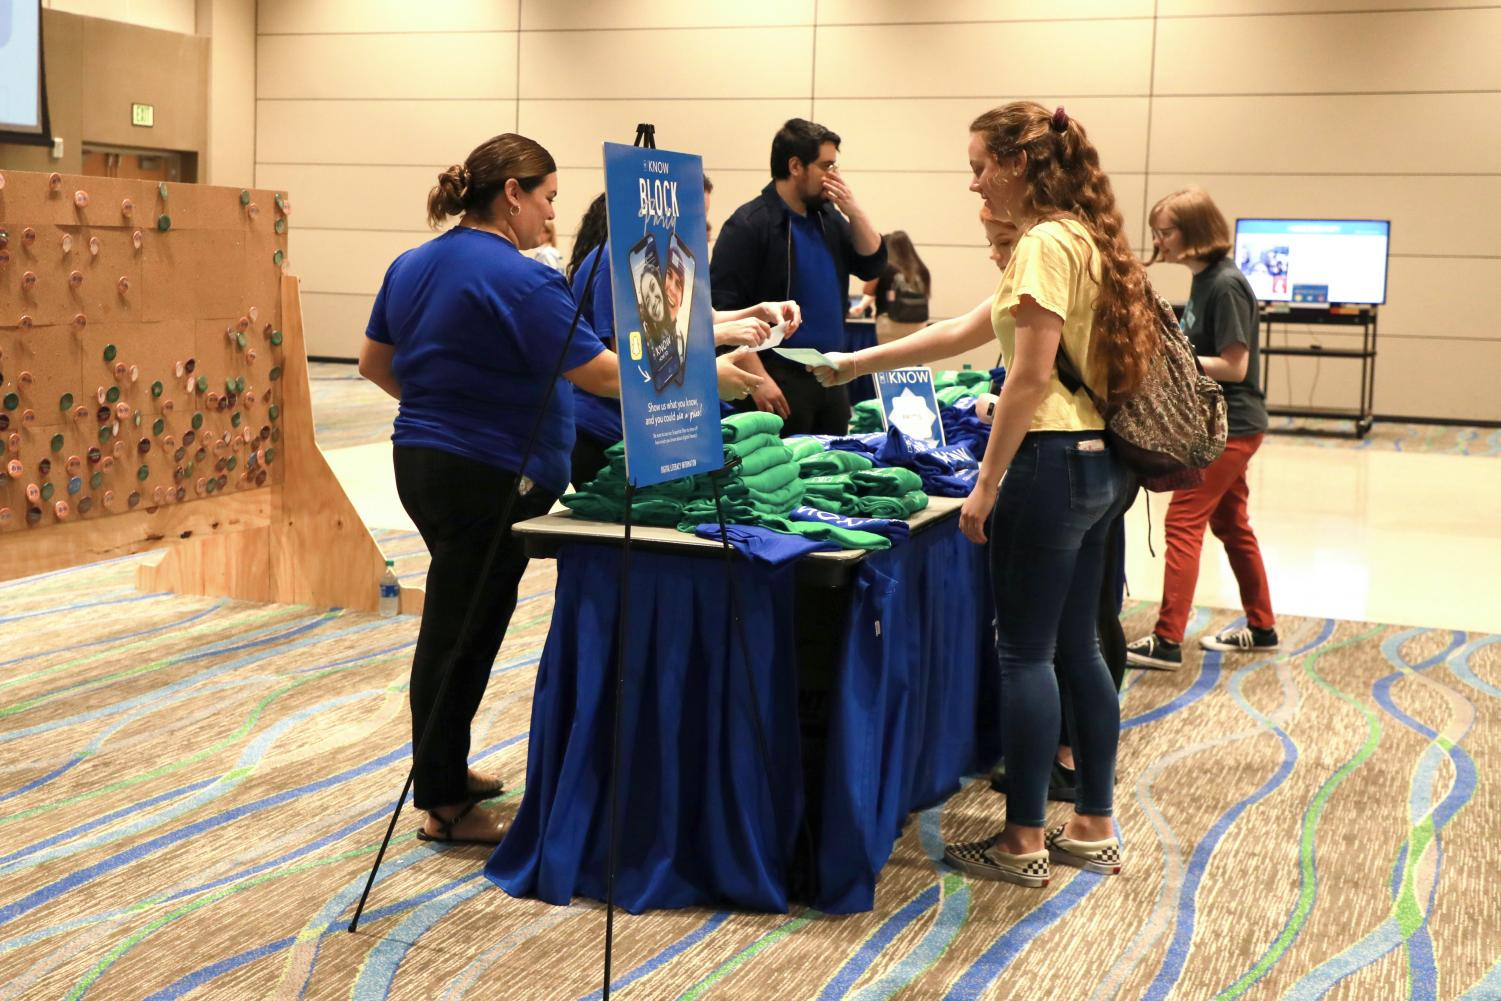 Students collect buttons, T-shirts and other giveaway items at the I-Know Quality Enhancement Plan Block Party on Feb. 4.